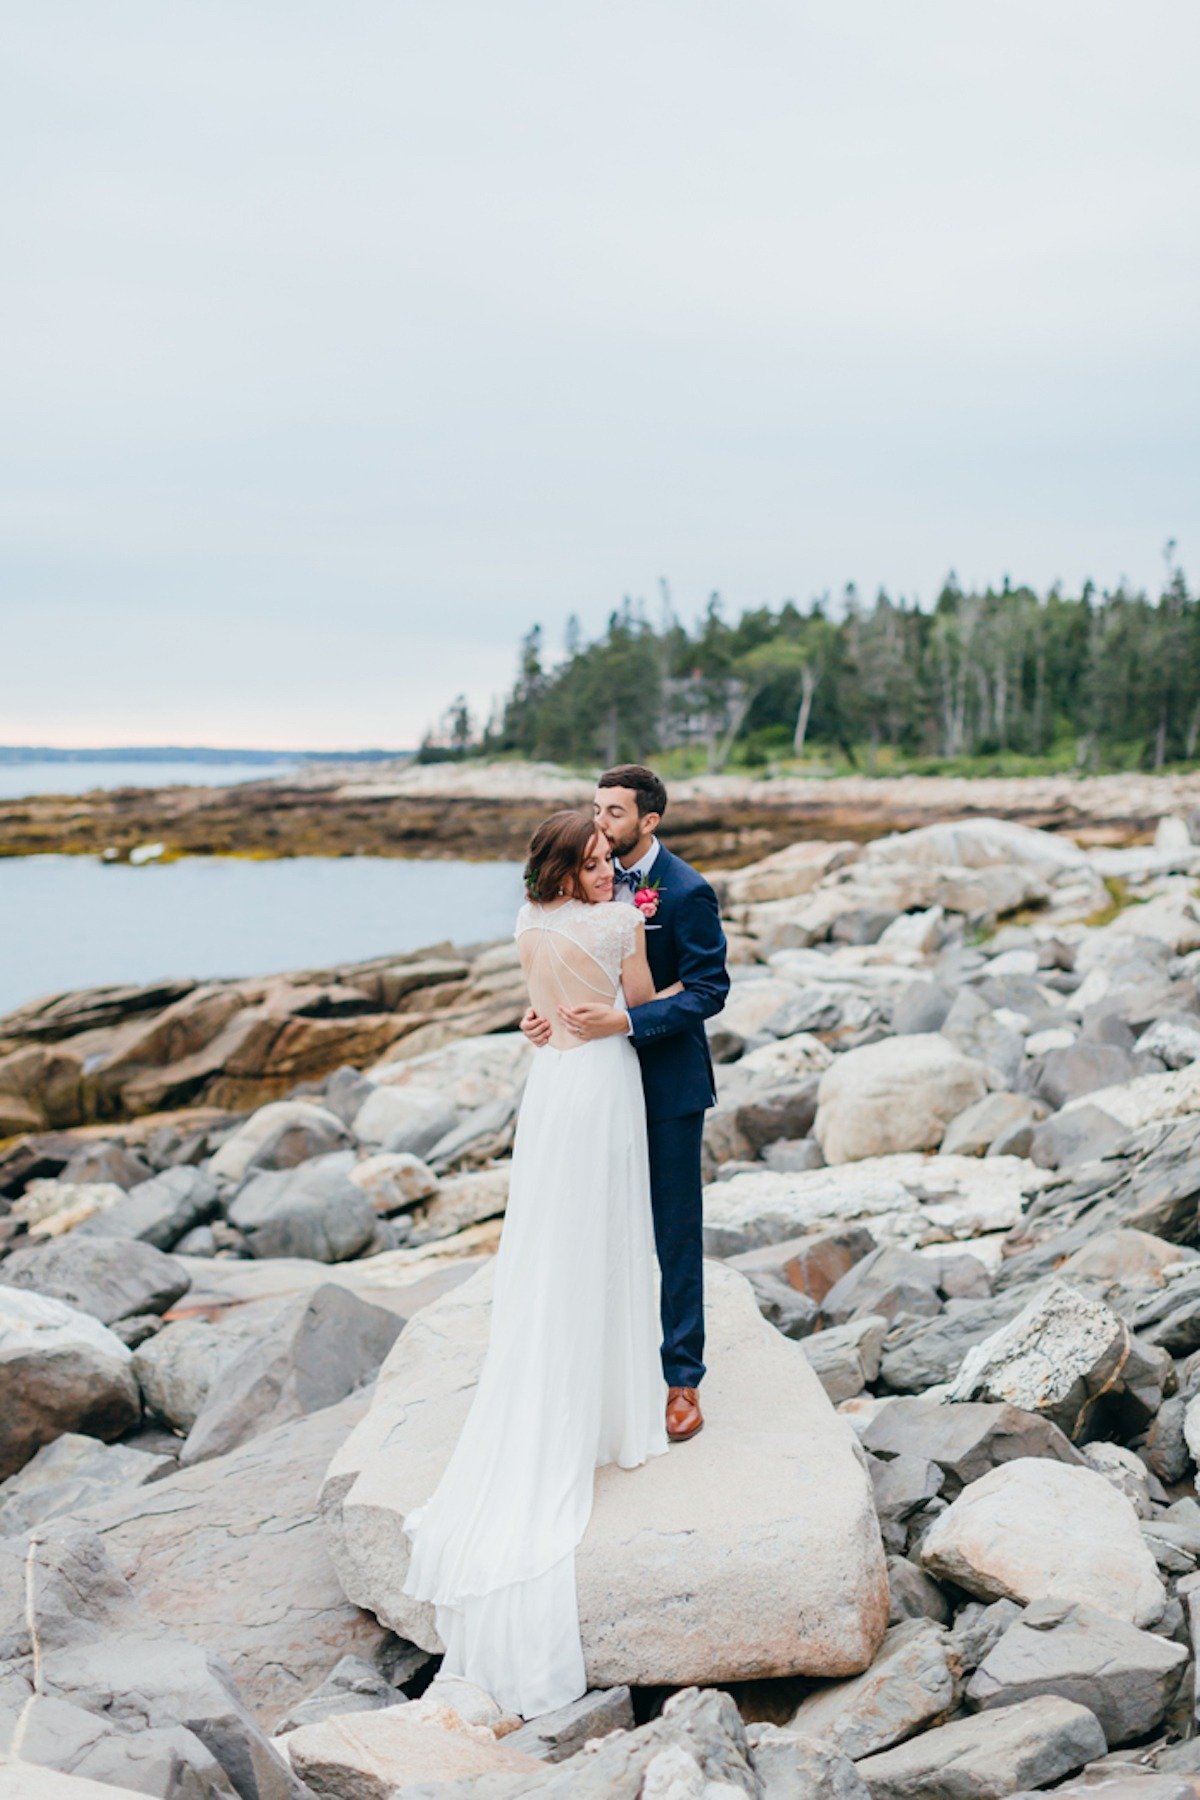 Hilary + Andy's New England Wedding